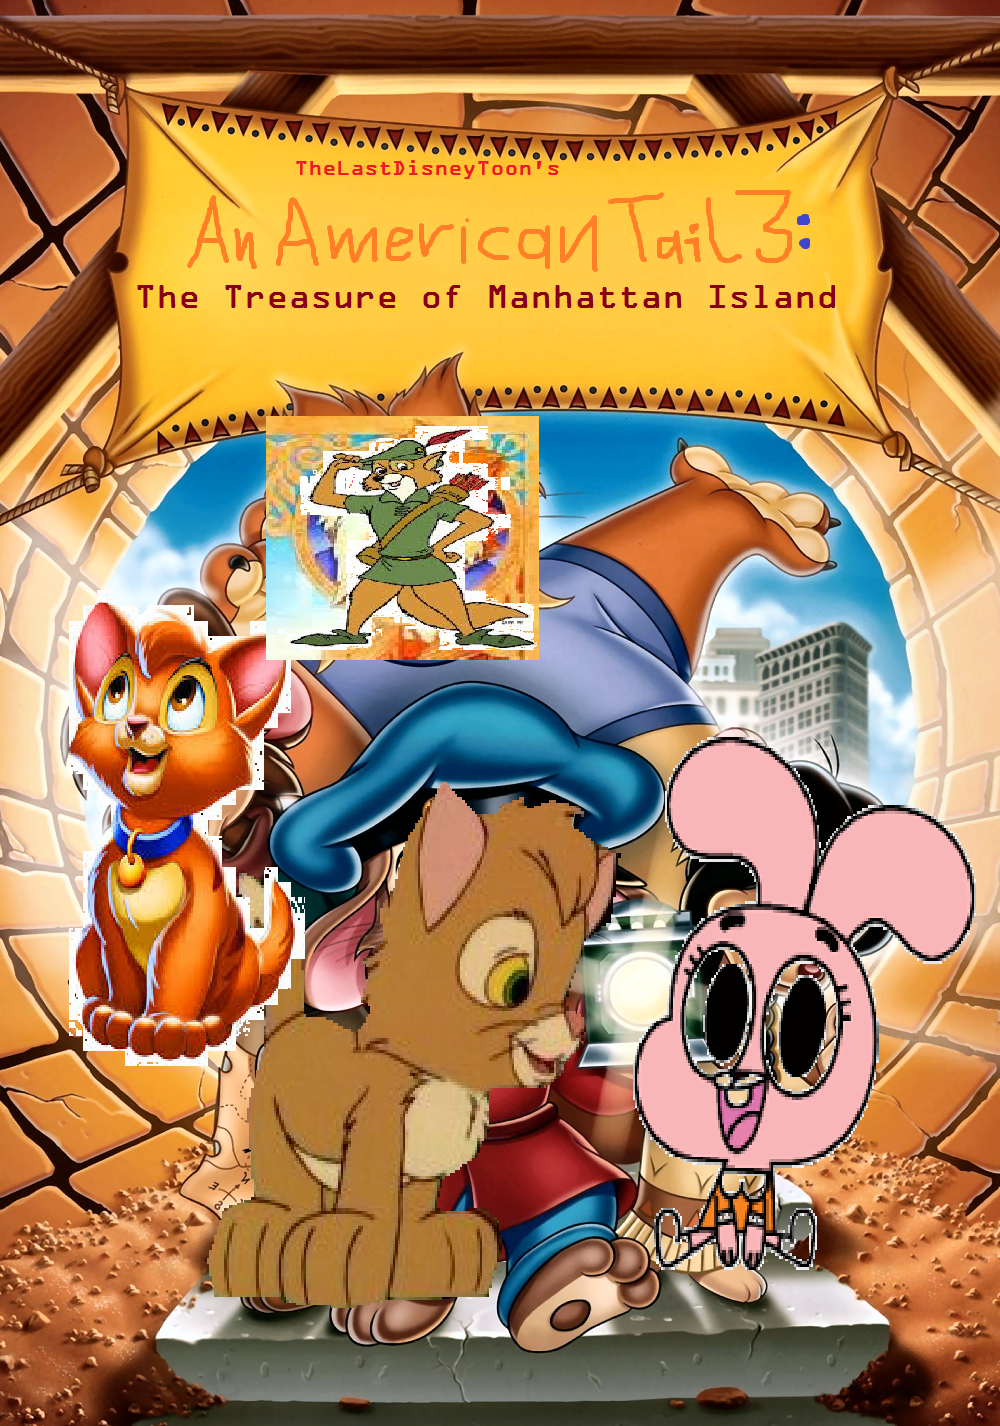 An American Tail 3: The Treasure of Manhattan Island (TheLastDisneyToon Style)